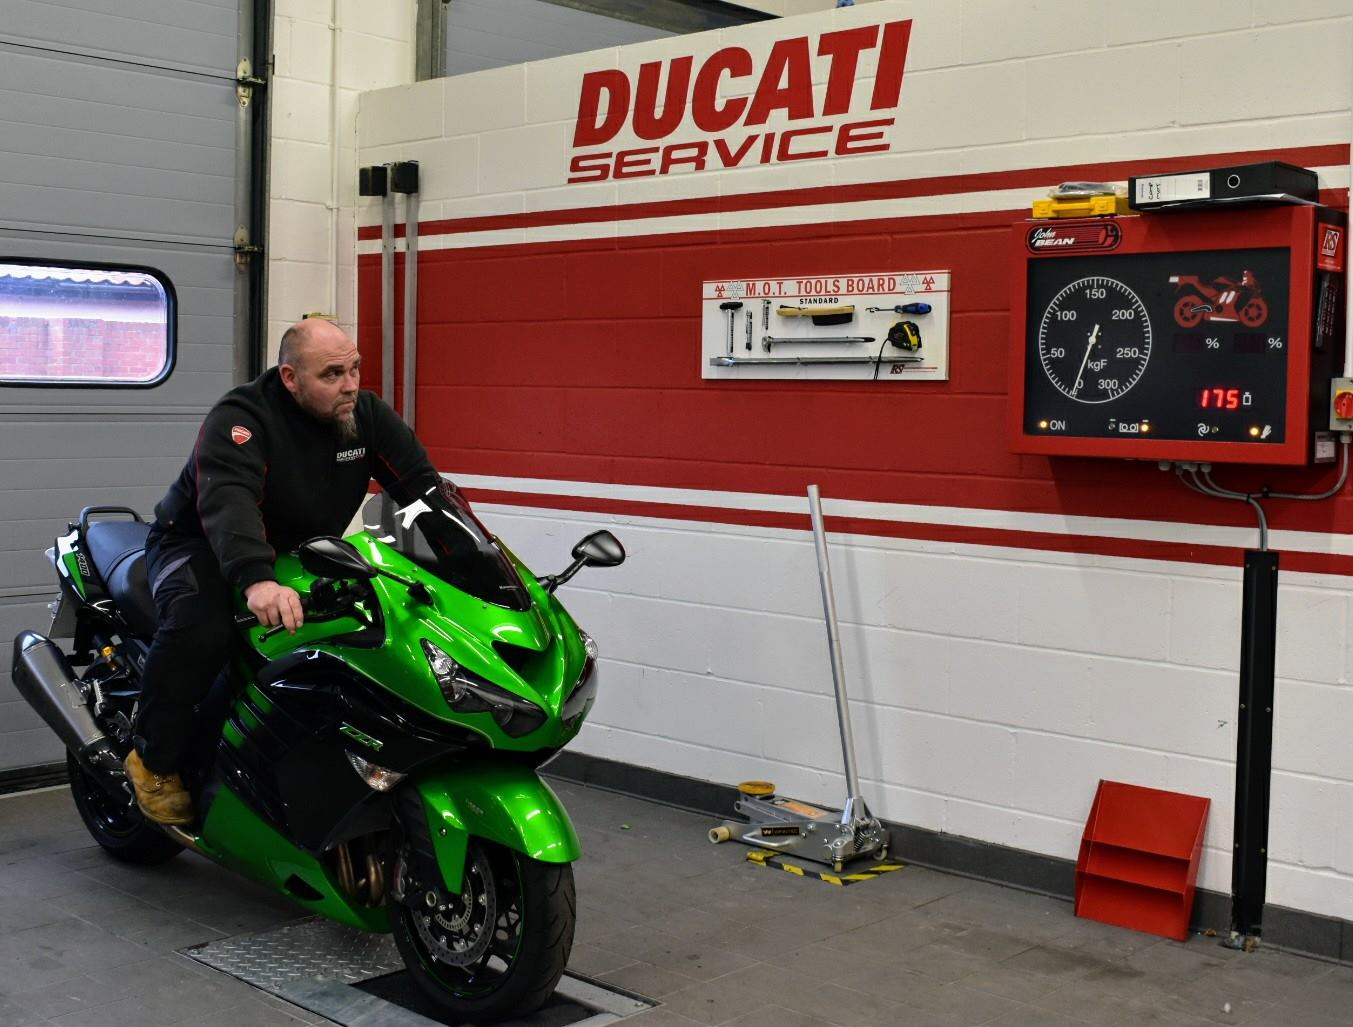 Ducati Cambridge are delighted to announce MOT testing for all manufacturers. Please call us on 01223 317959 to book your bike in ready for when summer season finally kicks in.